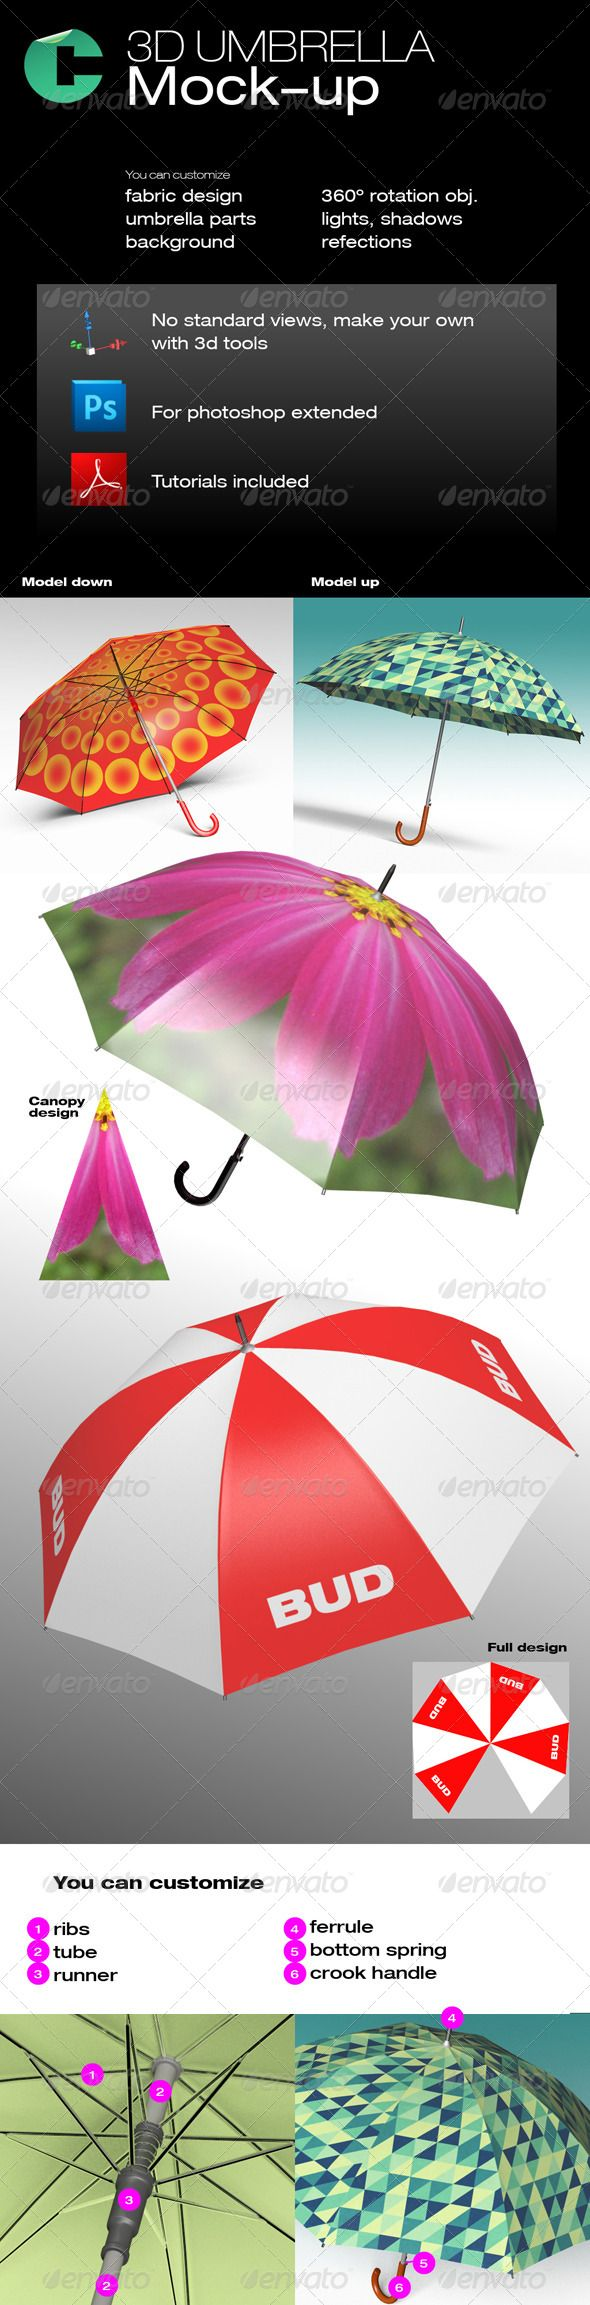 3D Object - Umbrella  #GraphicRiver         This product is compatible with Adobe Photoshop CS5 Extended and CS6 Extended   PDF tutorial included for this model   FEATURES   3D model with easy customization  Rotate 360 degrees  Move around  You can set any background  You can scale up to 4000×4000 pixels  canopy placeholder  Object Shadows  Ground plane shadows  Lights control    In this set: 1 PDF tutorial, 2 3d models, 2 reference canopy in photoshop    You may download the tutorial…